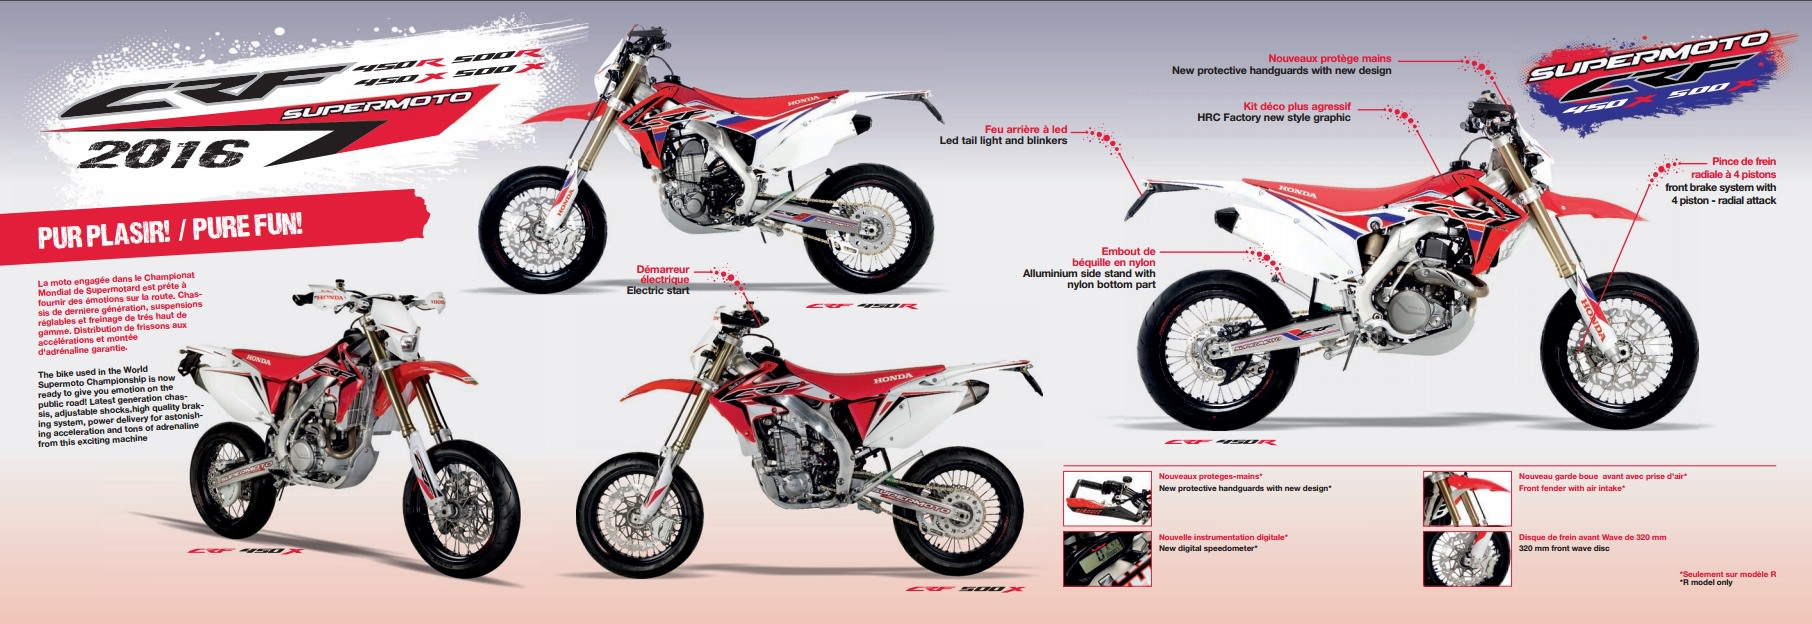 2017 Honda CRF450R SuperMoto Motard Bike / Motorcycle Review & Specs - CRF450R, CRF450X, CRF500R, CRF500X CRF Models